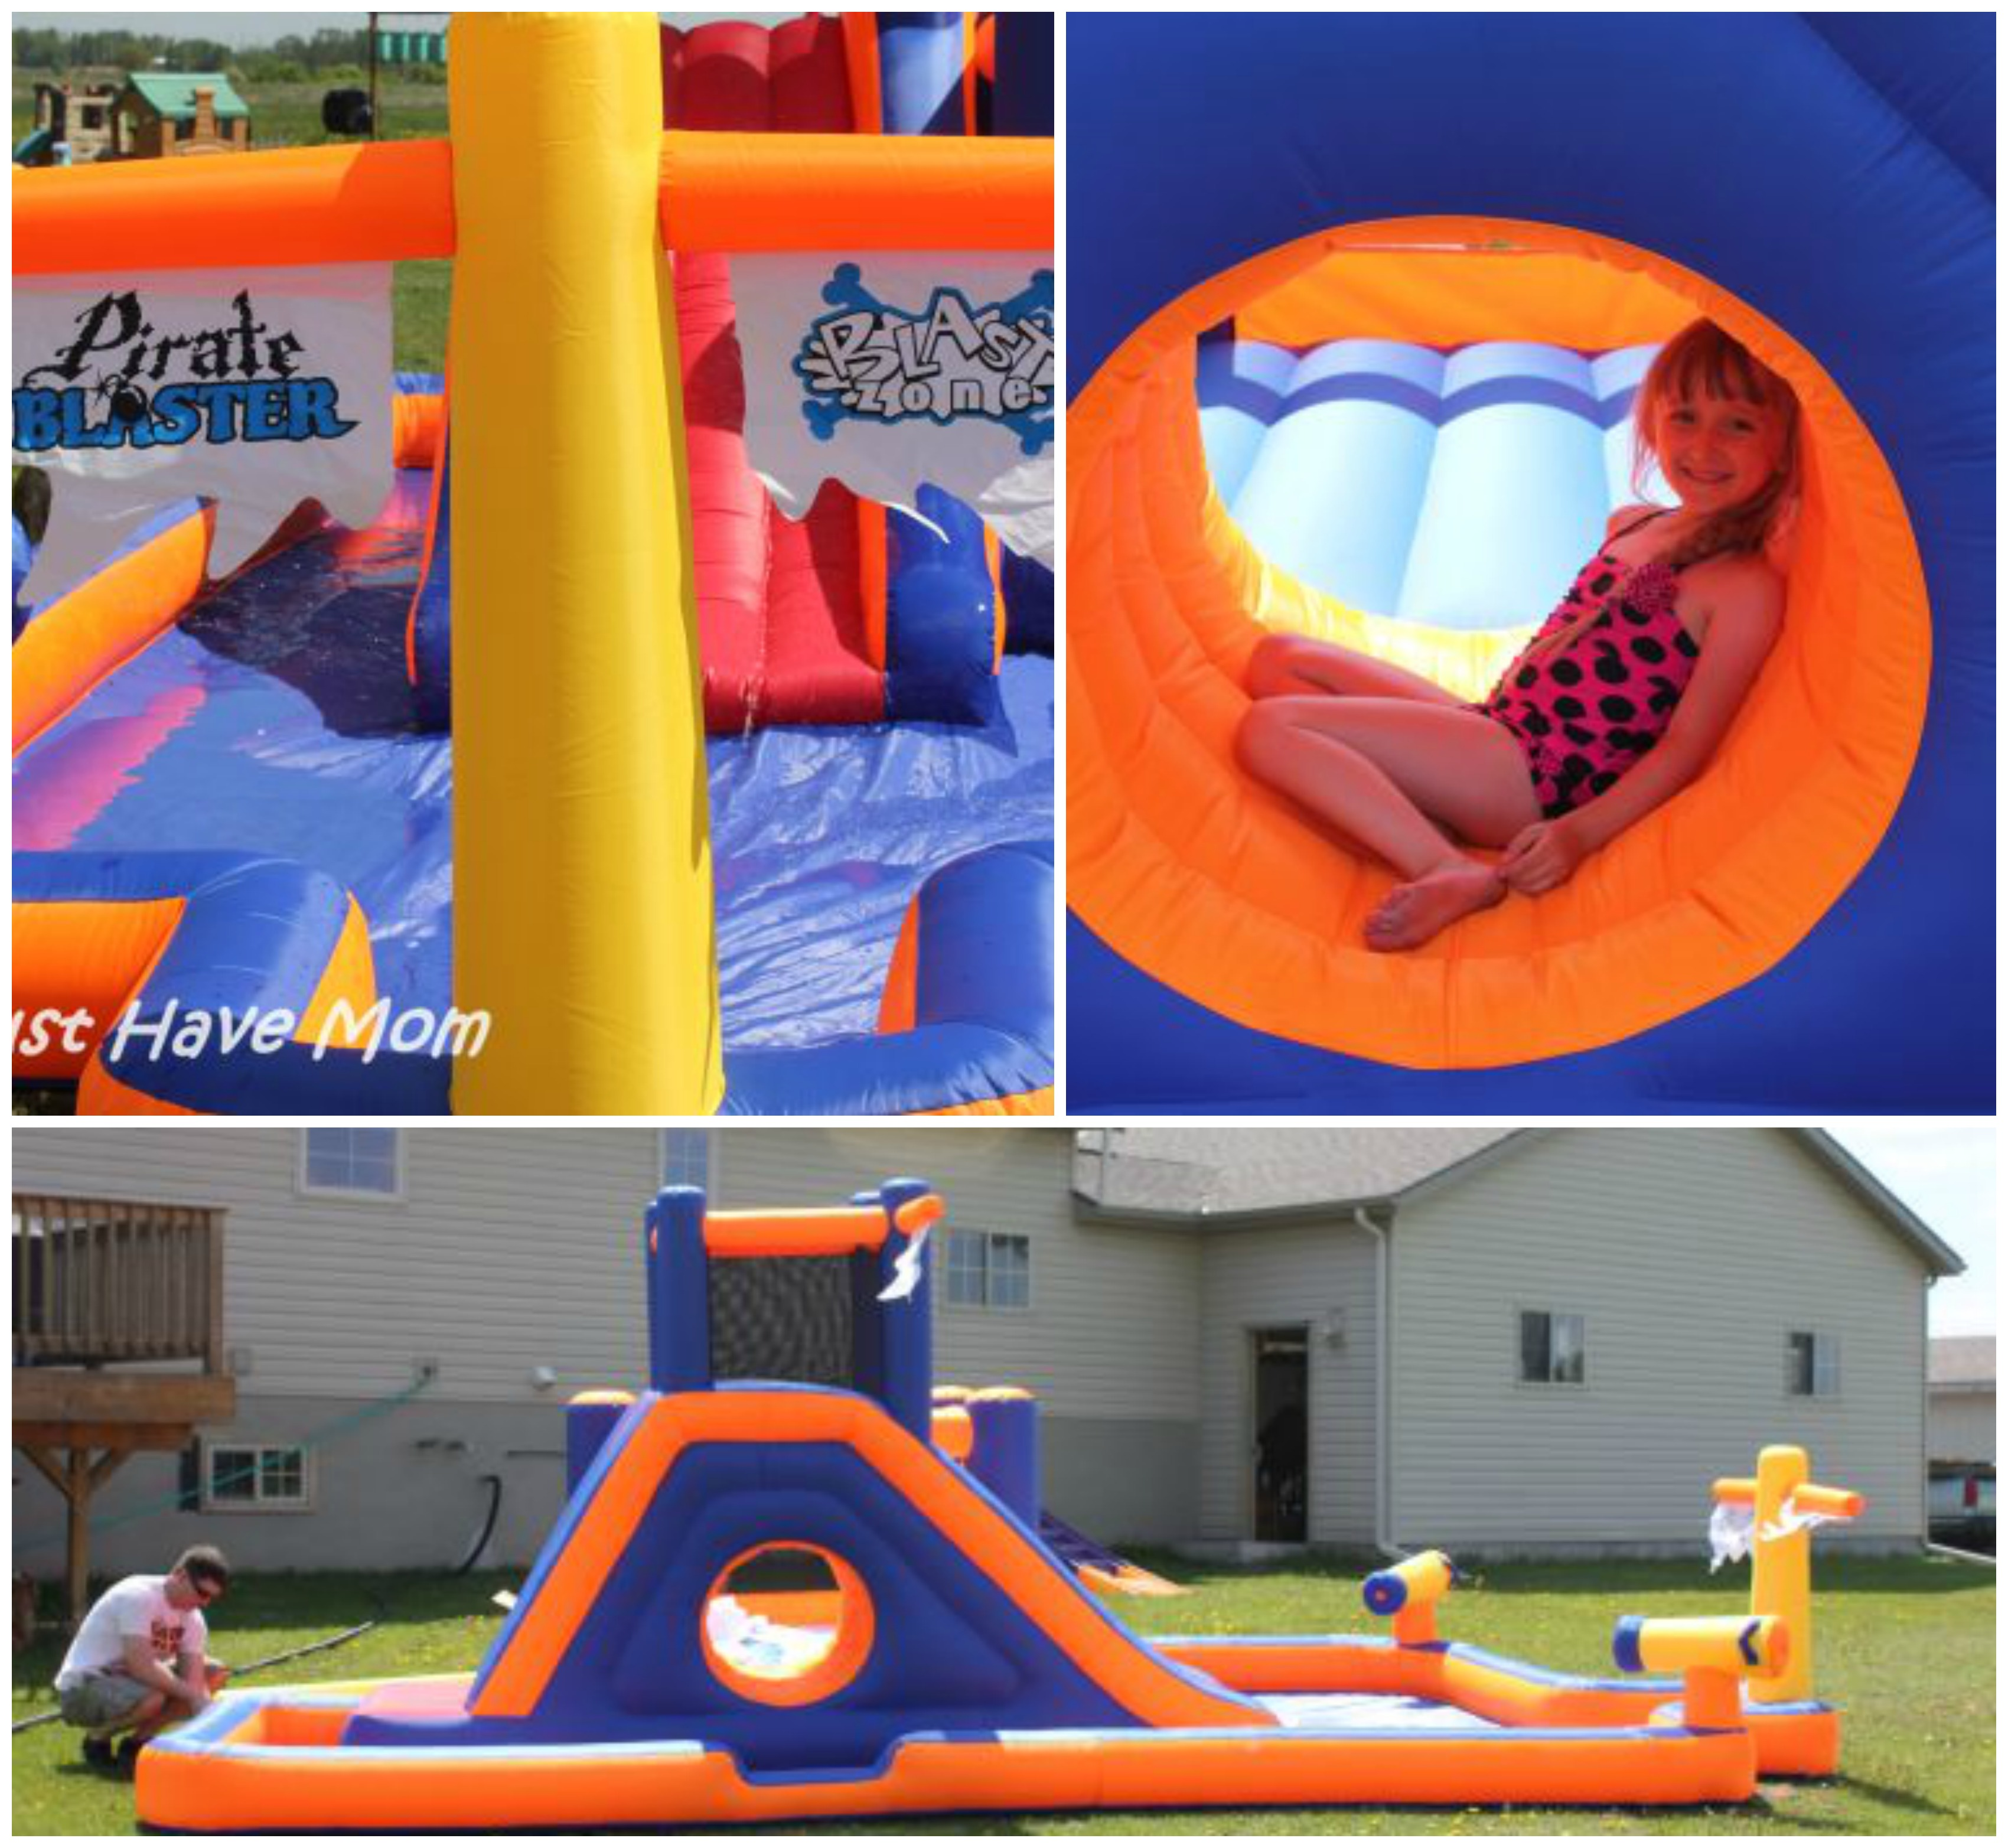 Groovy Inflatable Pirate Water Park From Bounce Houses Now 500 Download Free Architecture Designs Scobabritishbridgeorg